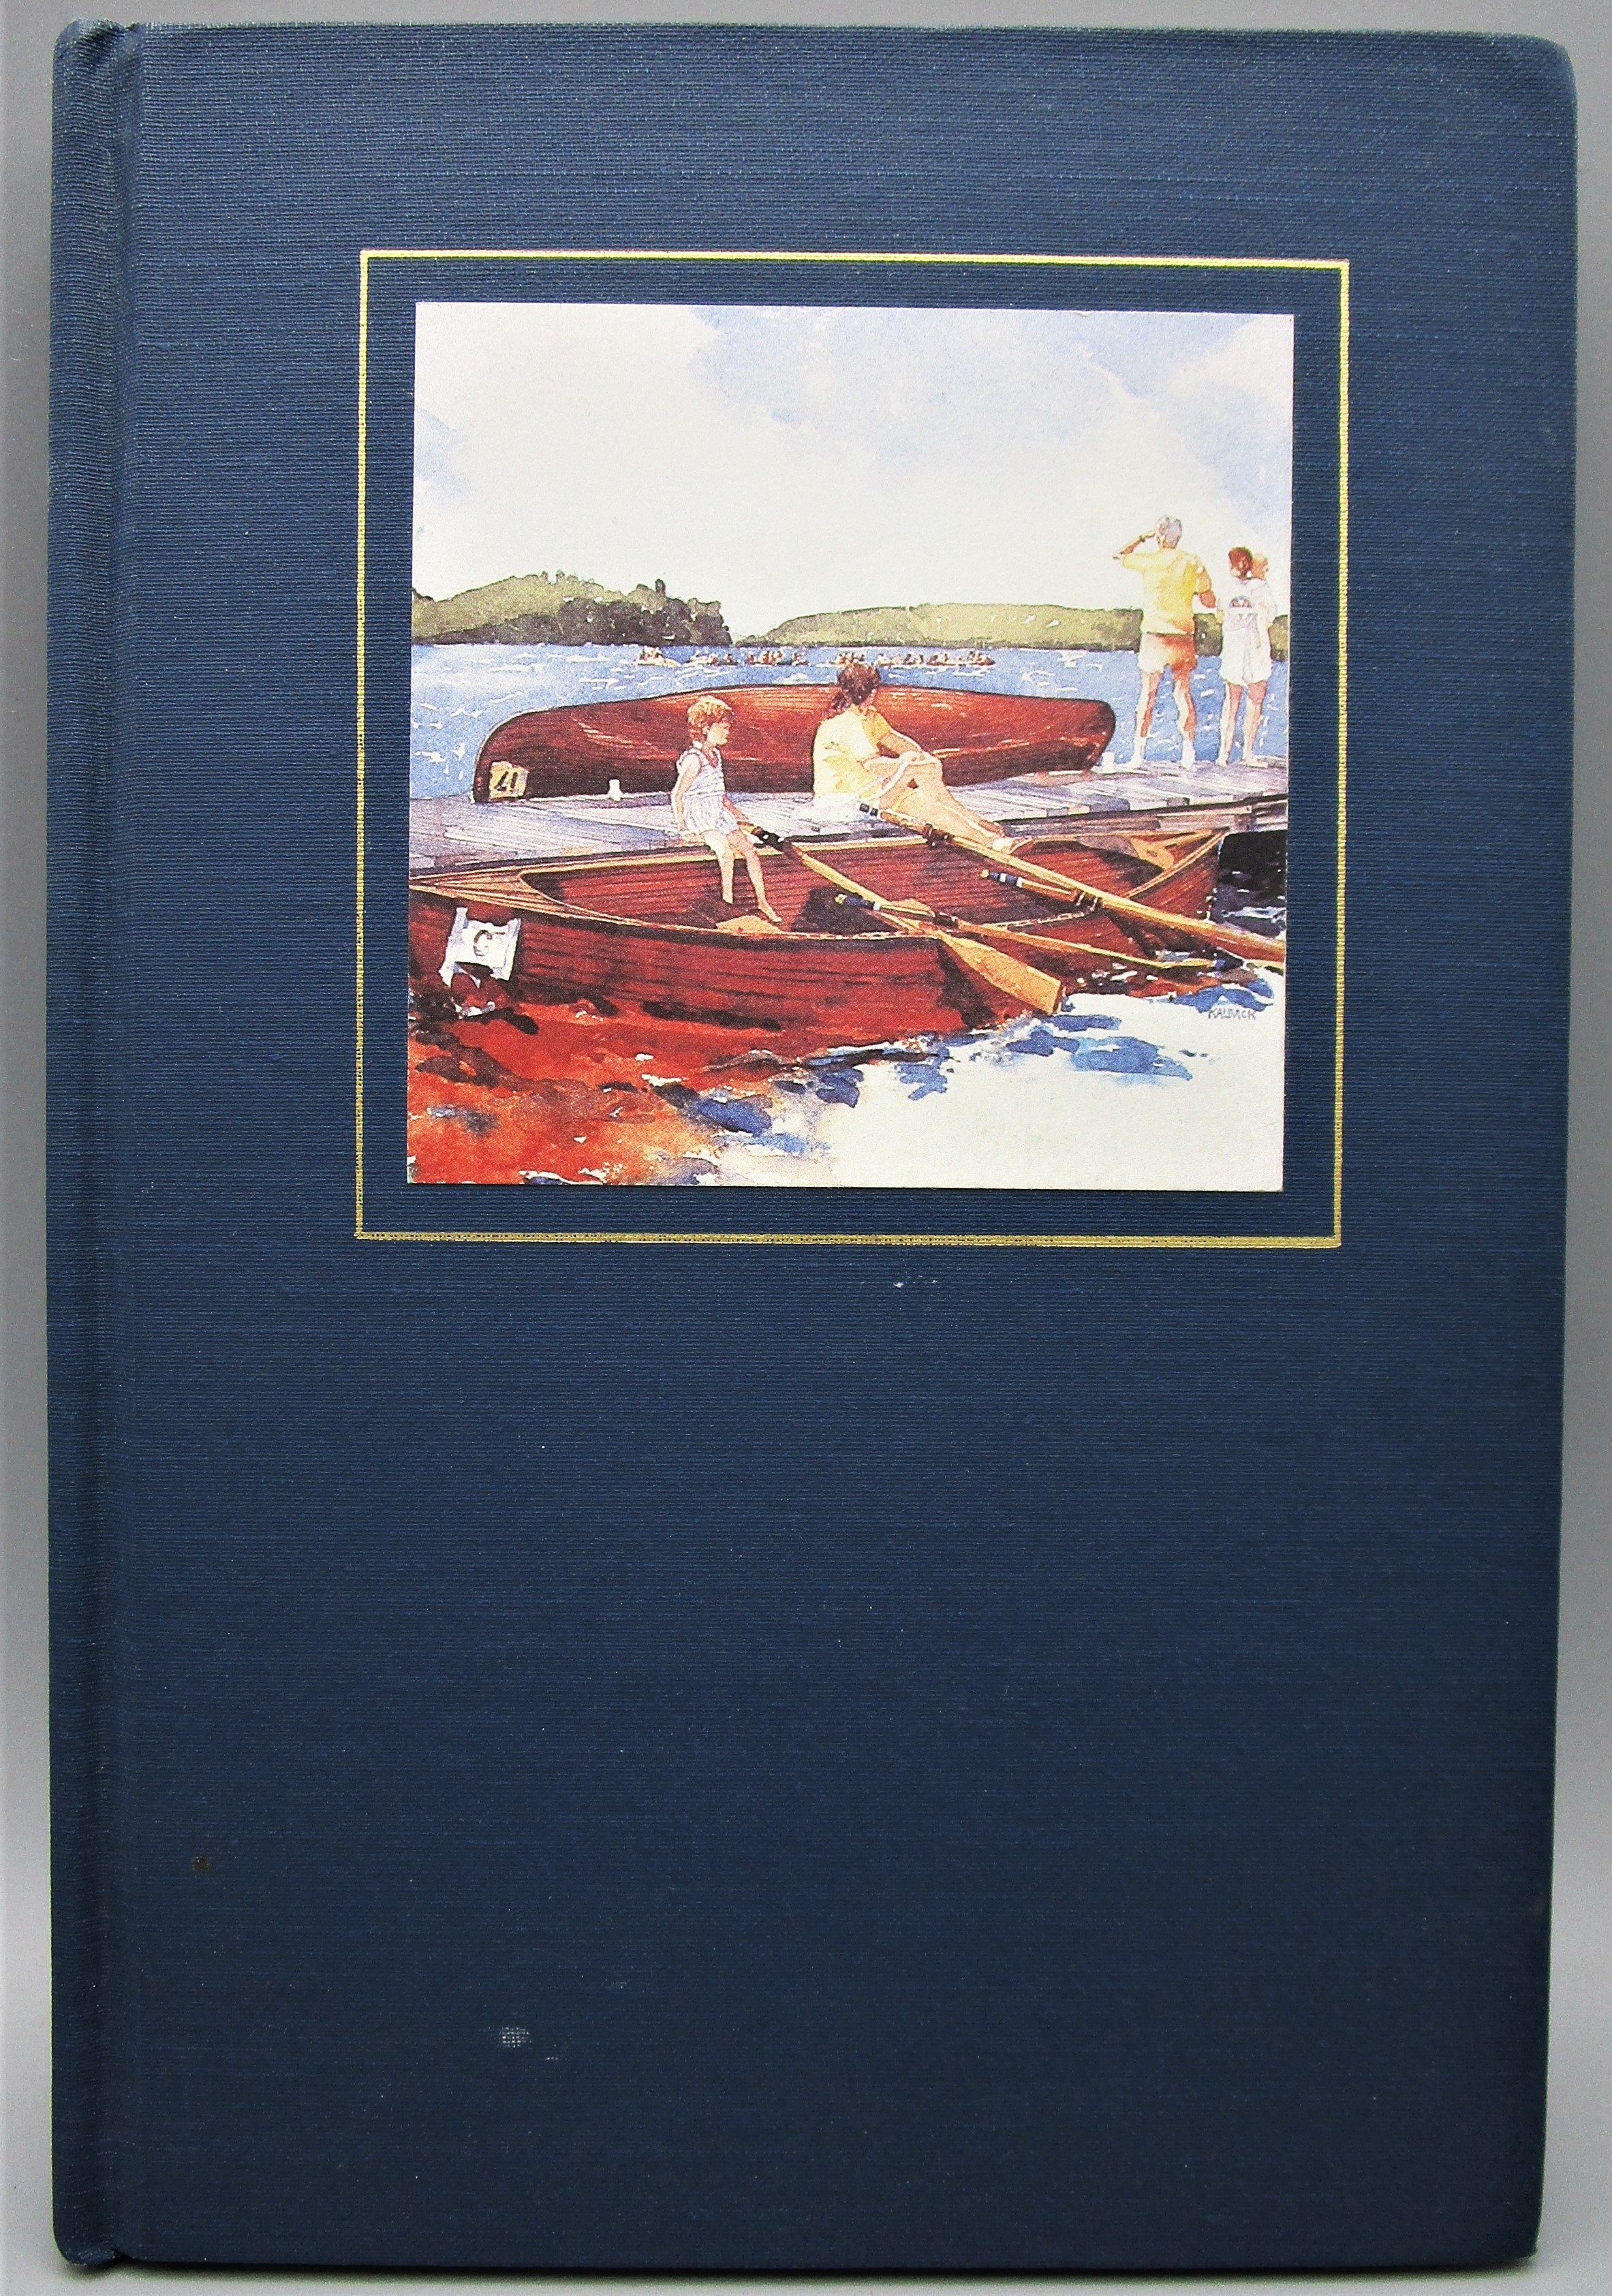 THE CHILDREN'S REGATTA, by C. Gorham Phillips - 1992 [Signed w/ALS]